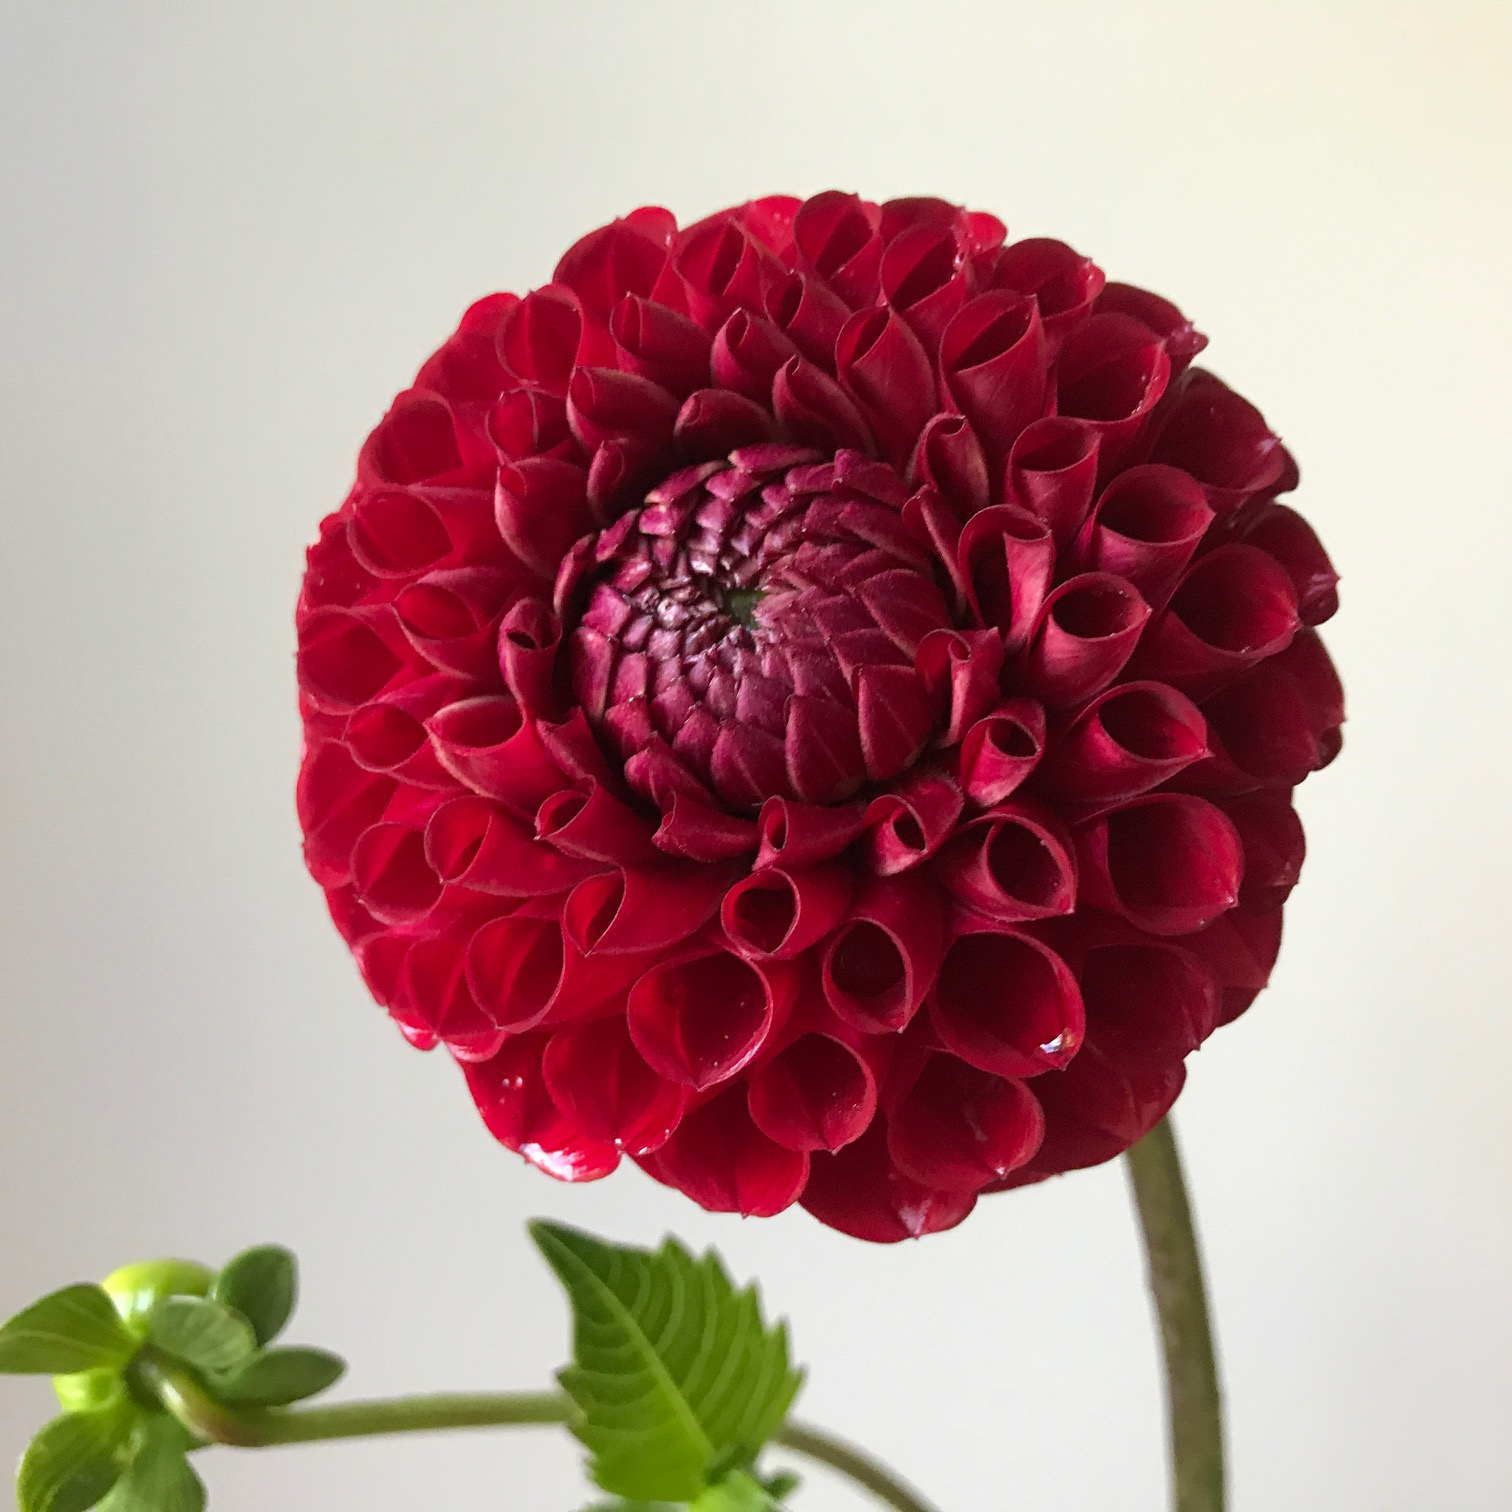 Dahlia Cornel is an industry favorite and it performs well in cold climates, too - offering many stems and resistance to pests (like potato leafhopper).